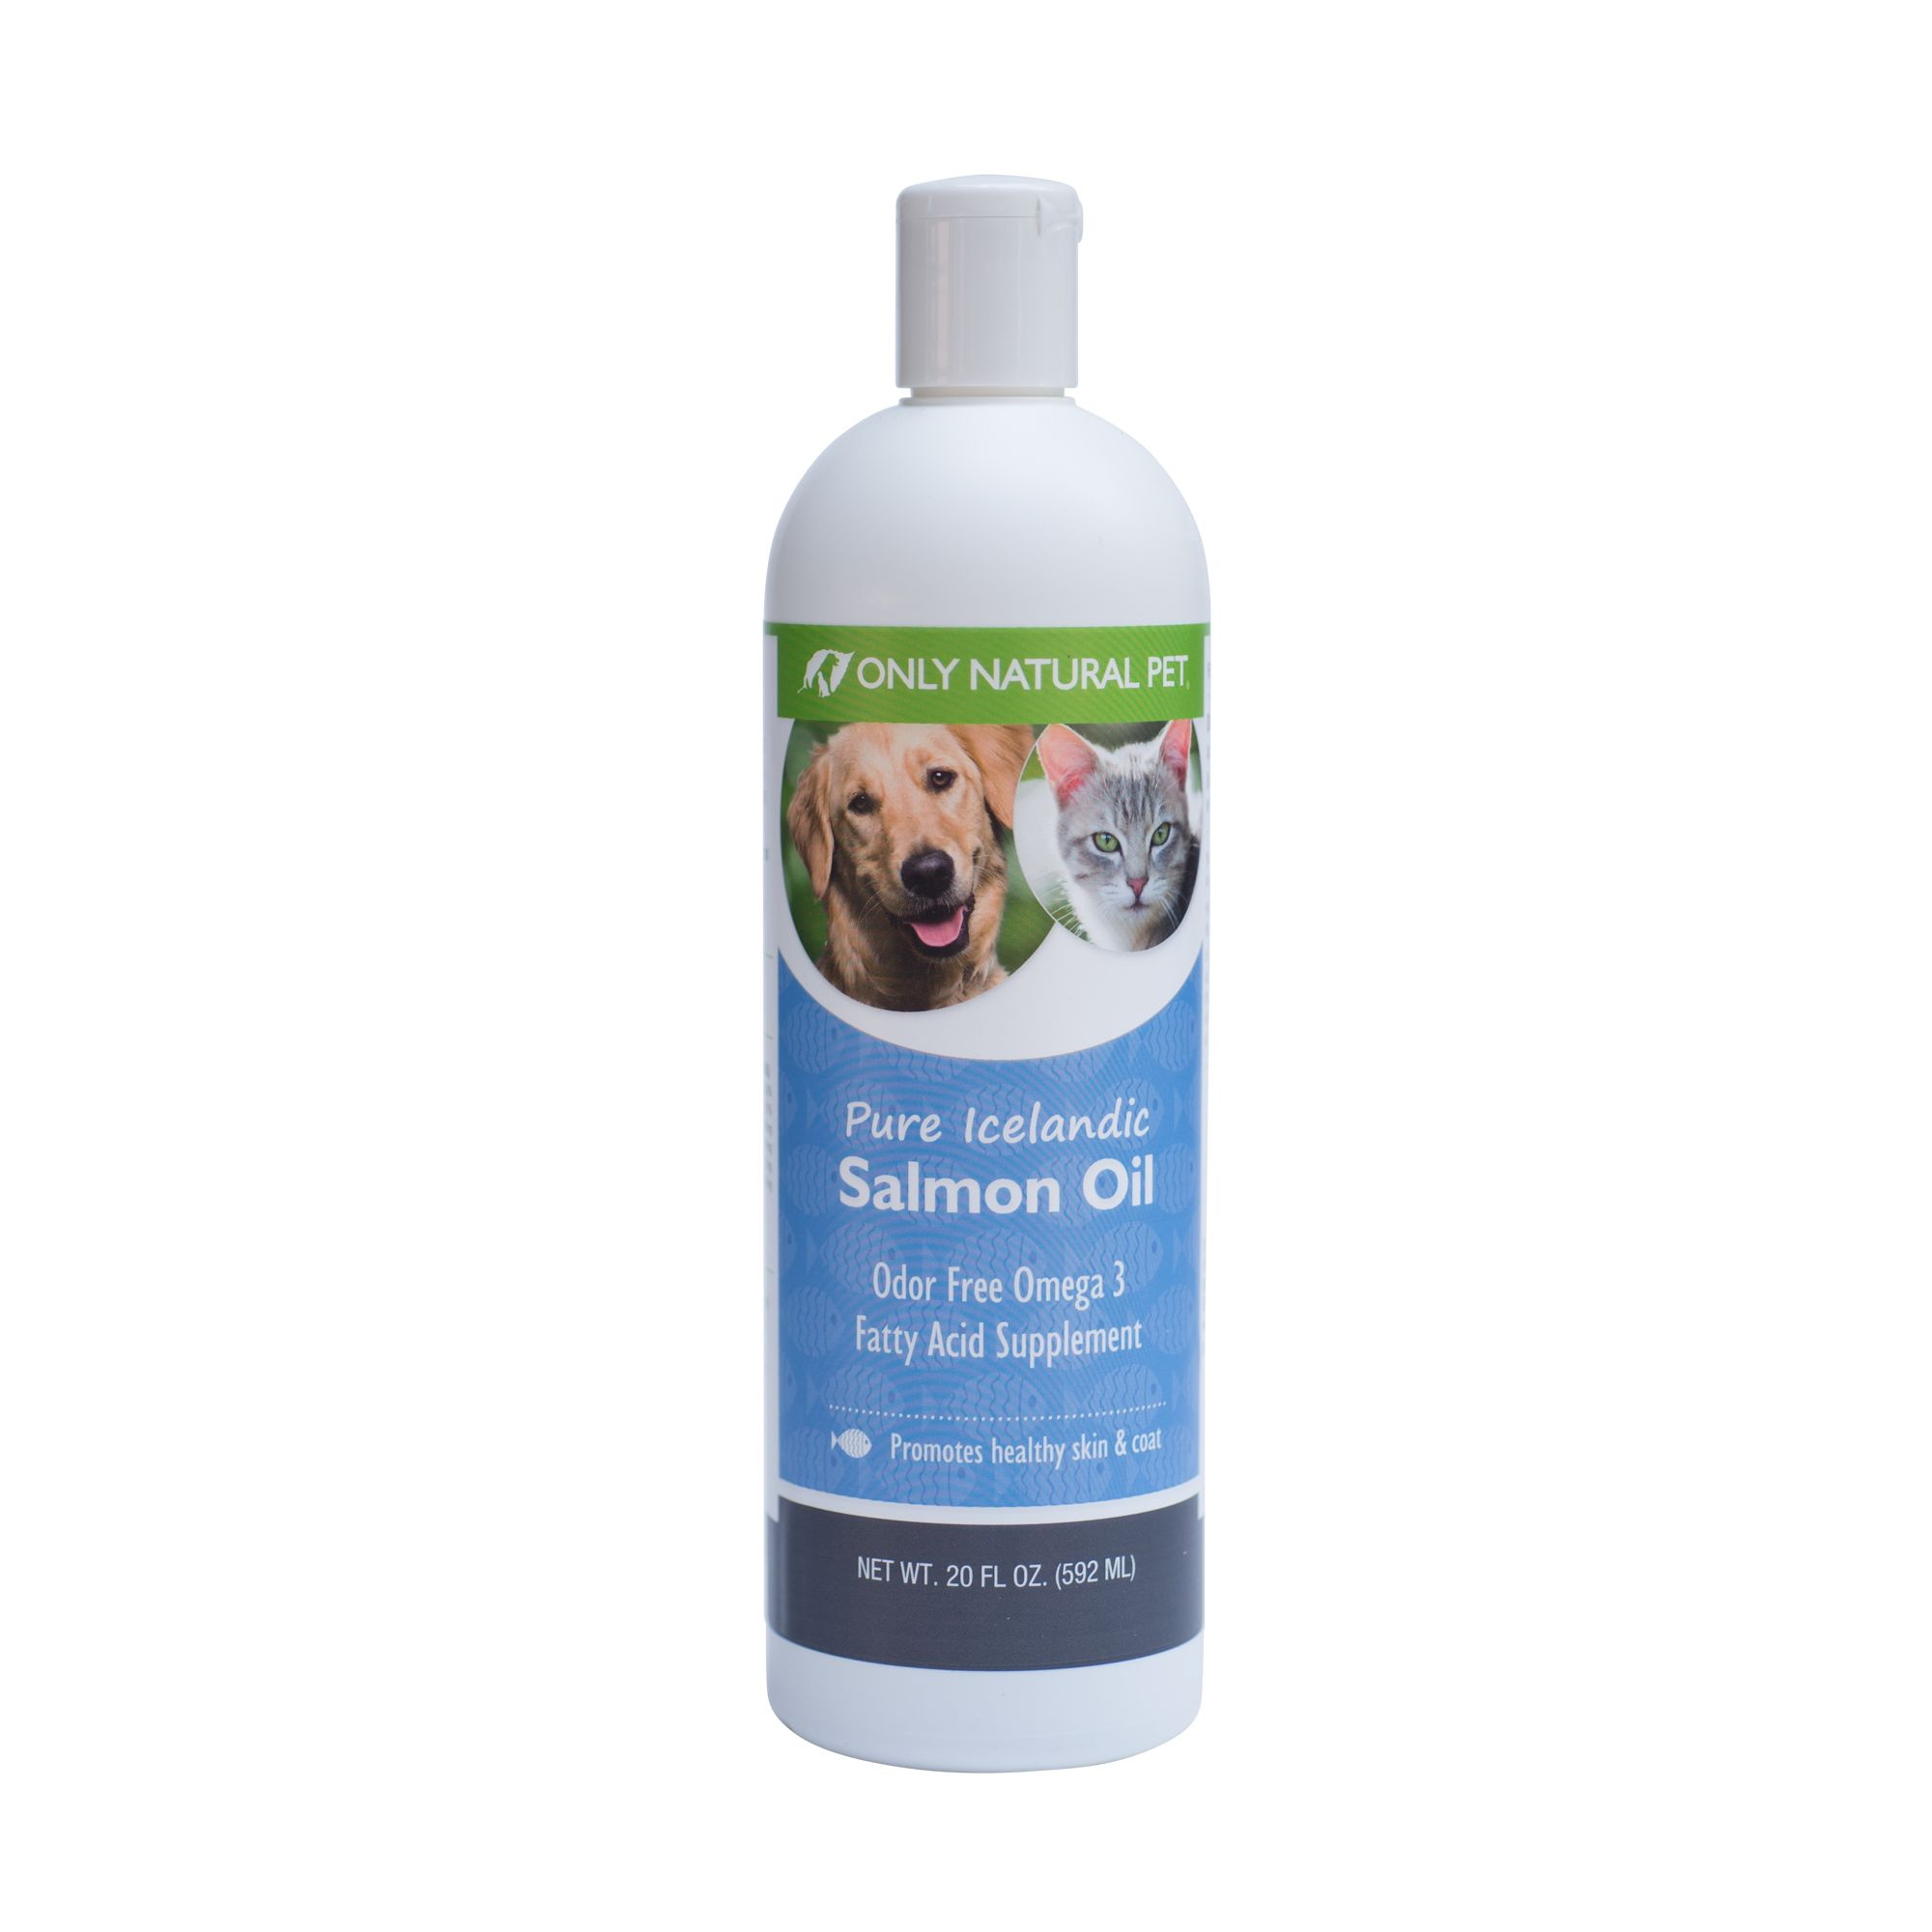 Only Natural Pet Pure Icelandic Salmon Oil size 20 Fl Oz